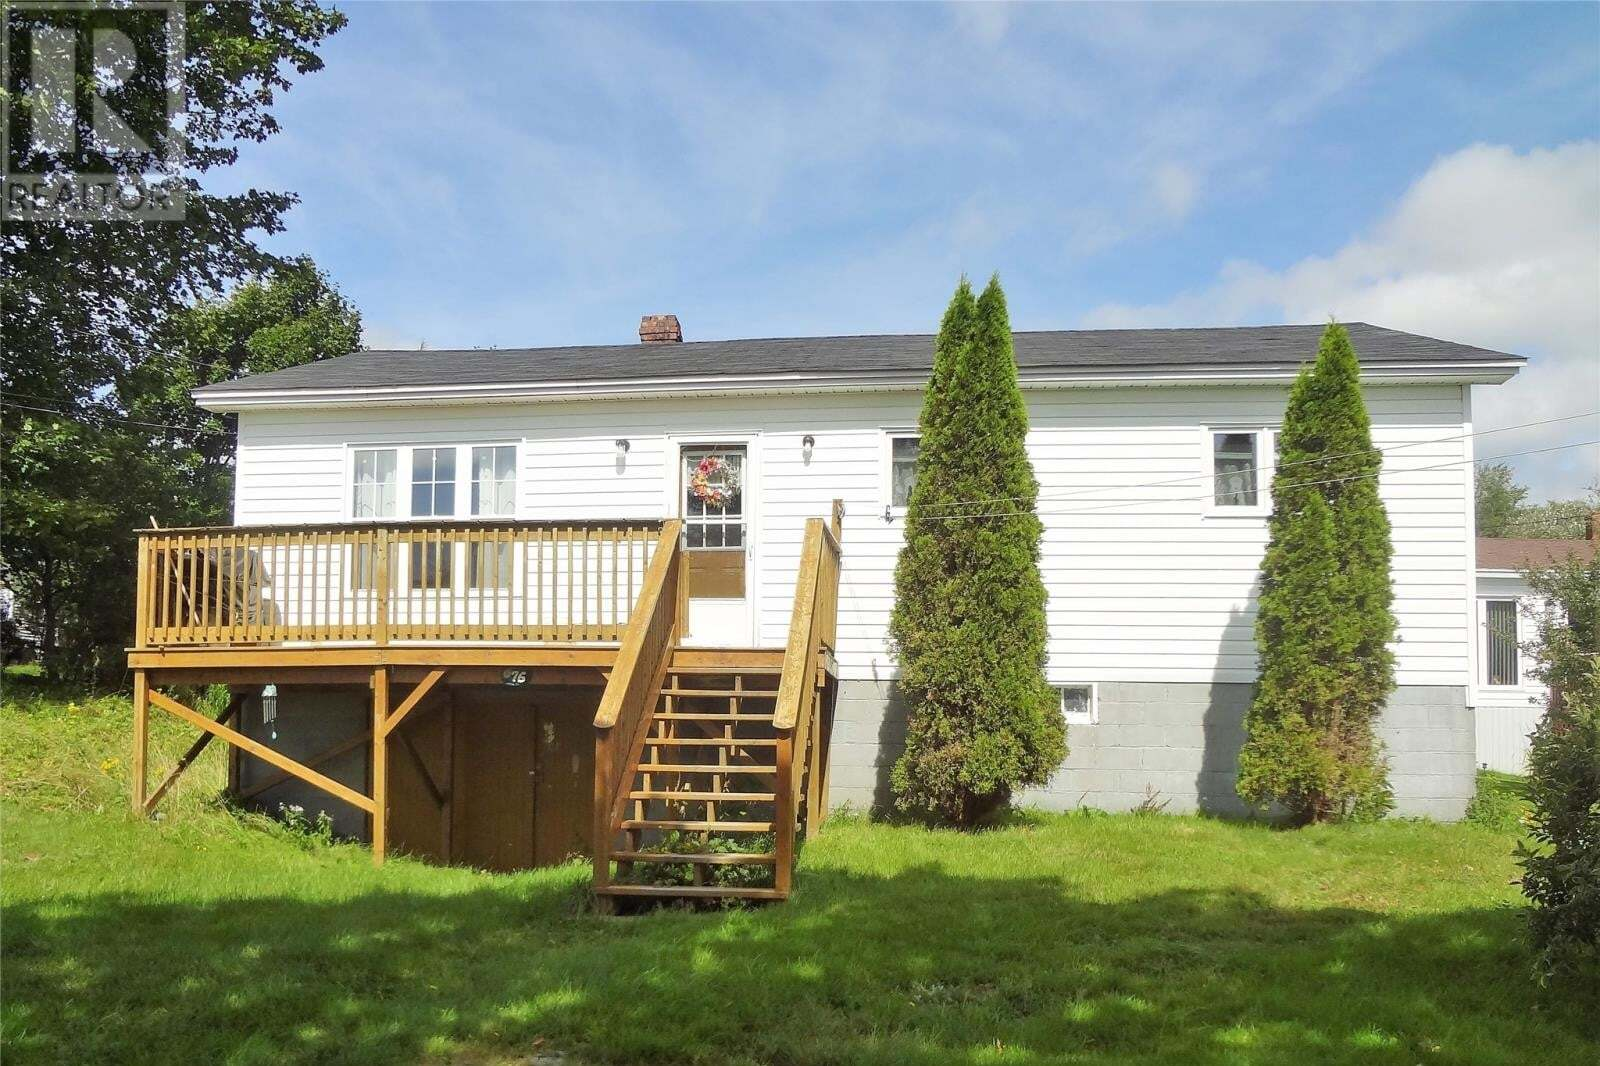 House for sale at 76 Lemarchant St Carbonear Newfoundland - MLS: 1221020